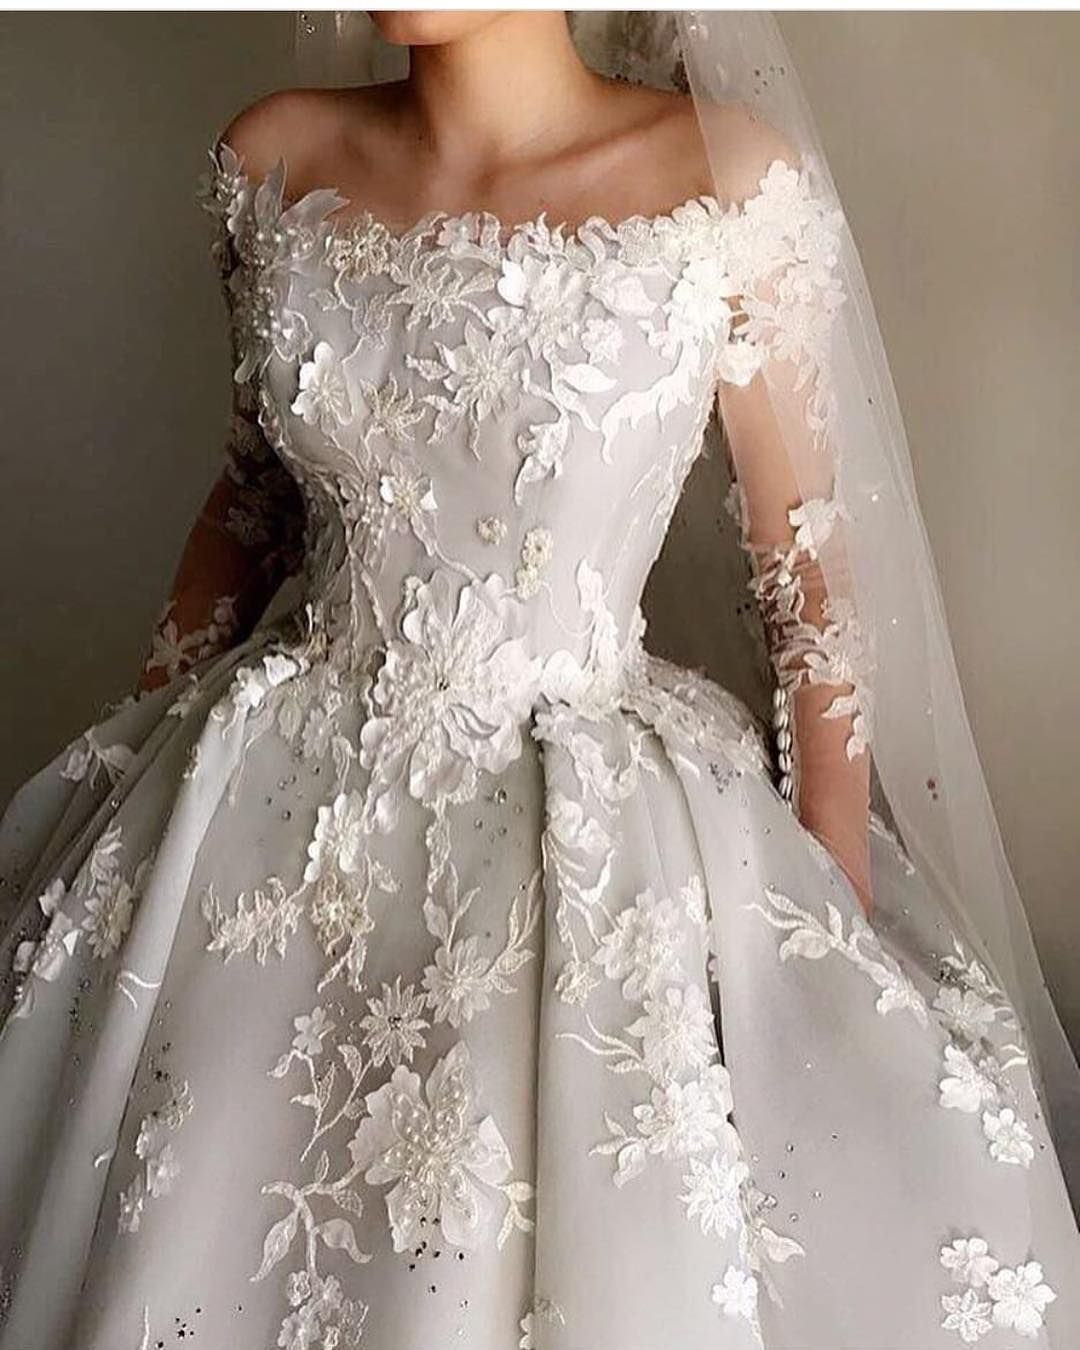 Make Your Own Wedding Dress: This Off The Shoulder Ball Gown Style Wedding Dress Can Be